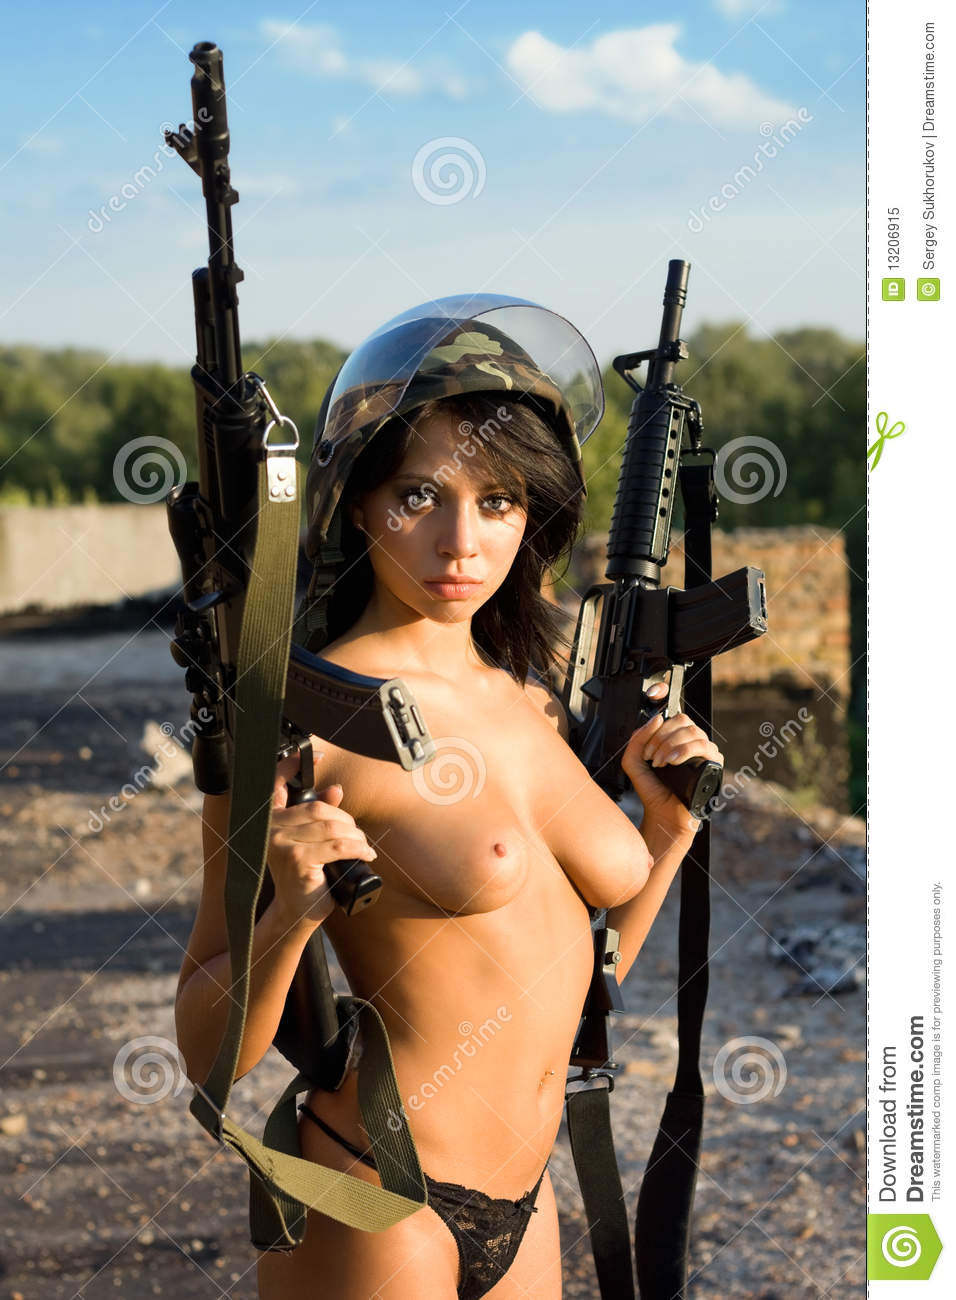 Can look nude redneck girls with guns remarkable, this